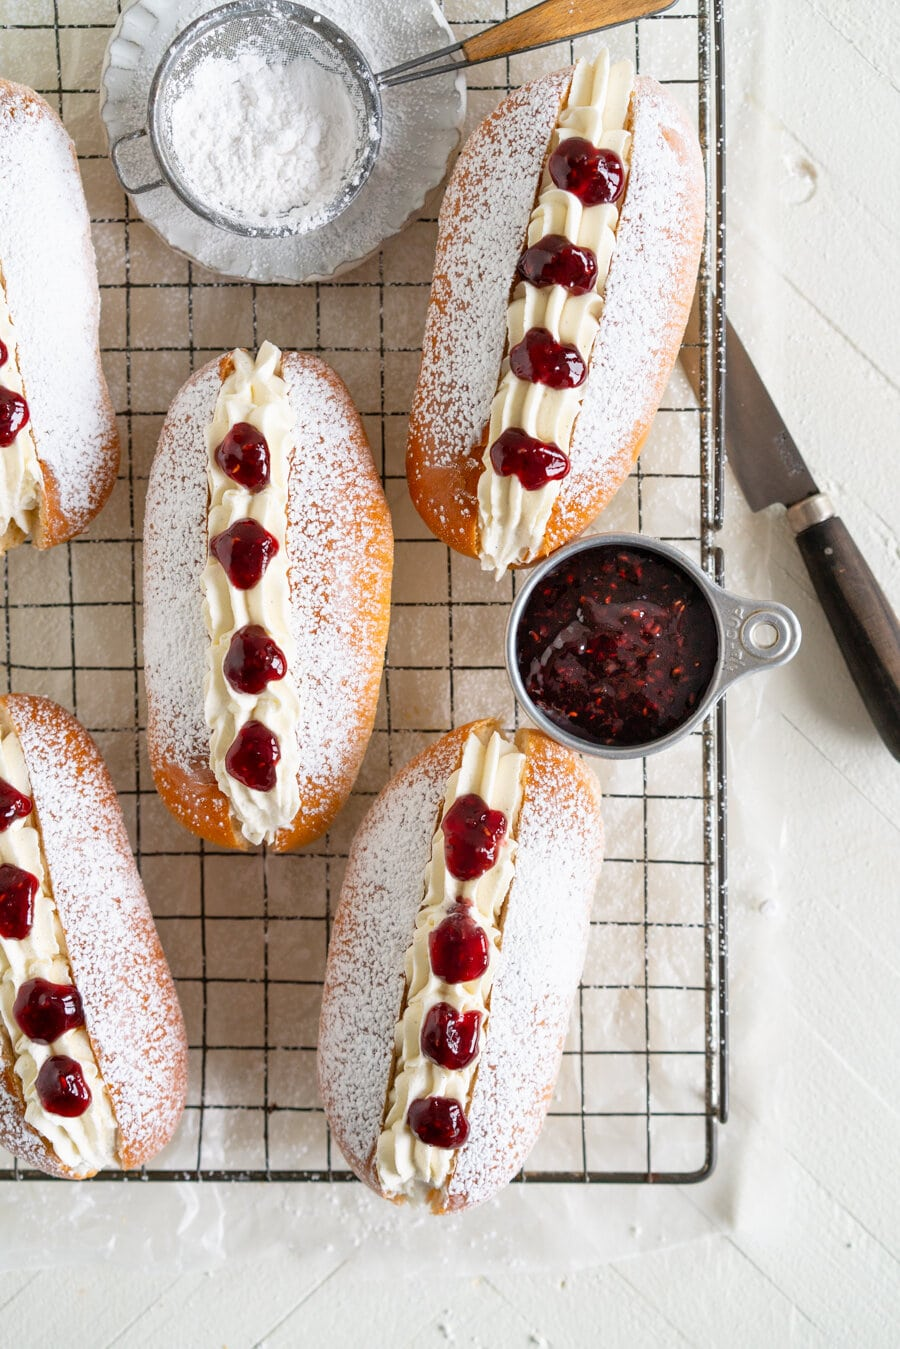 Cream Buns with Vanilla Bean Whipped Cream and Raspberry Jam. A baked version of the New Zealand Classic Bakery jam doughnut. A fluffy soft brioche bun is filled with piped sweetened whipped cream and raspberry jam.